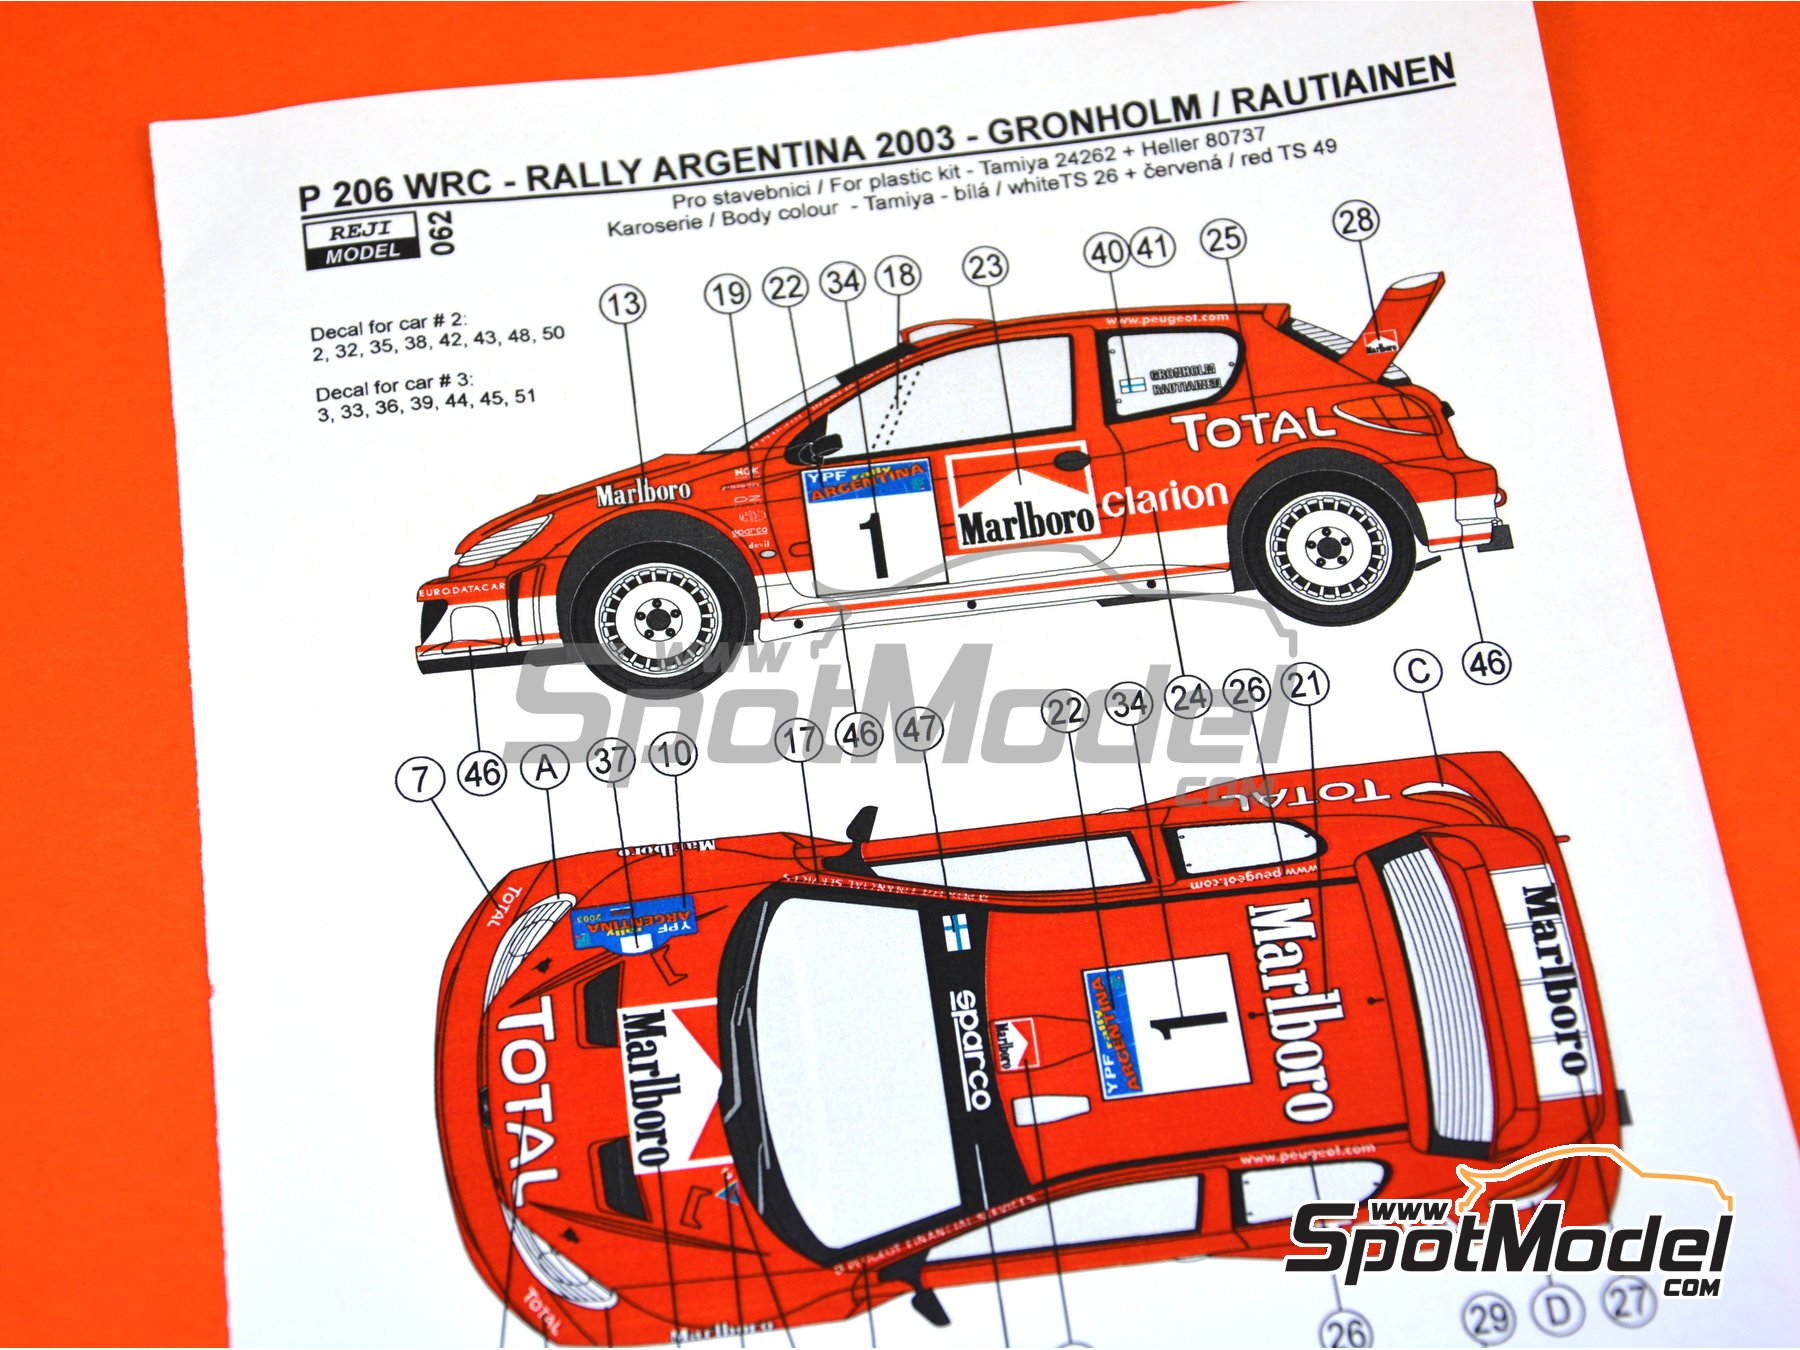 Image 1: Peugeot 206 WRC - Argentina rally 2003 | Marking / livery in 1/24 scale manufactured by Reji Model (ref. REJI-062)